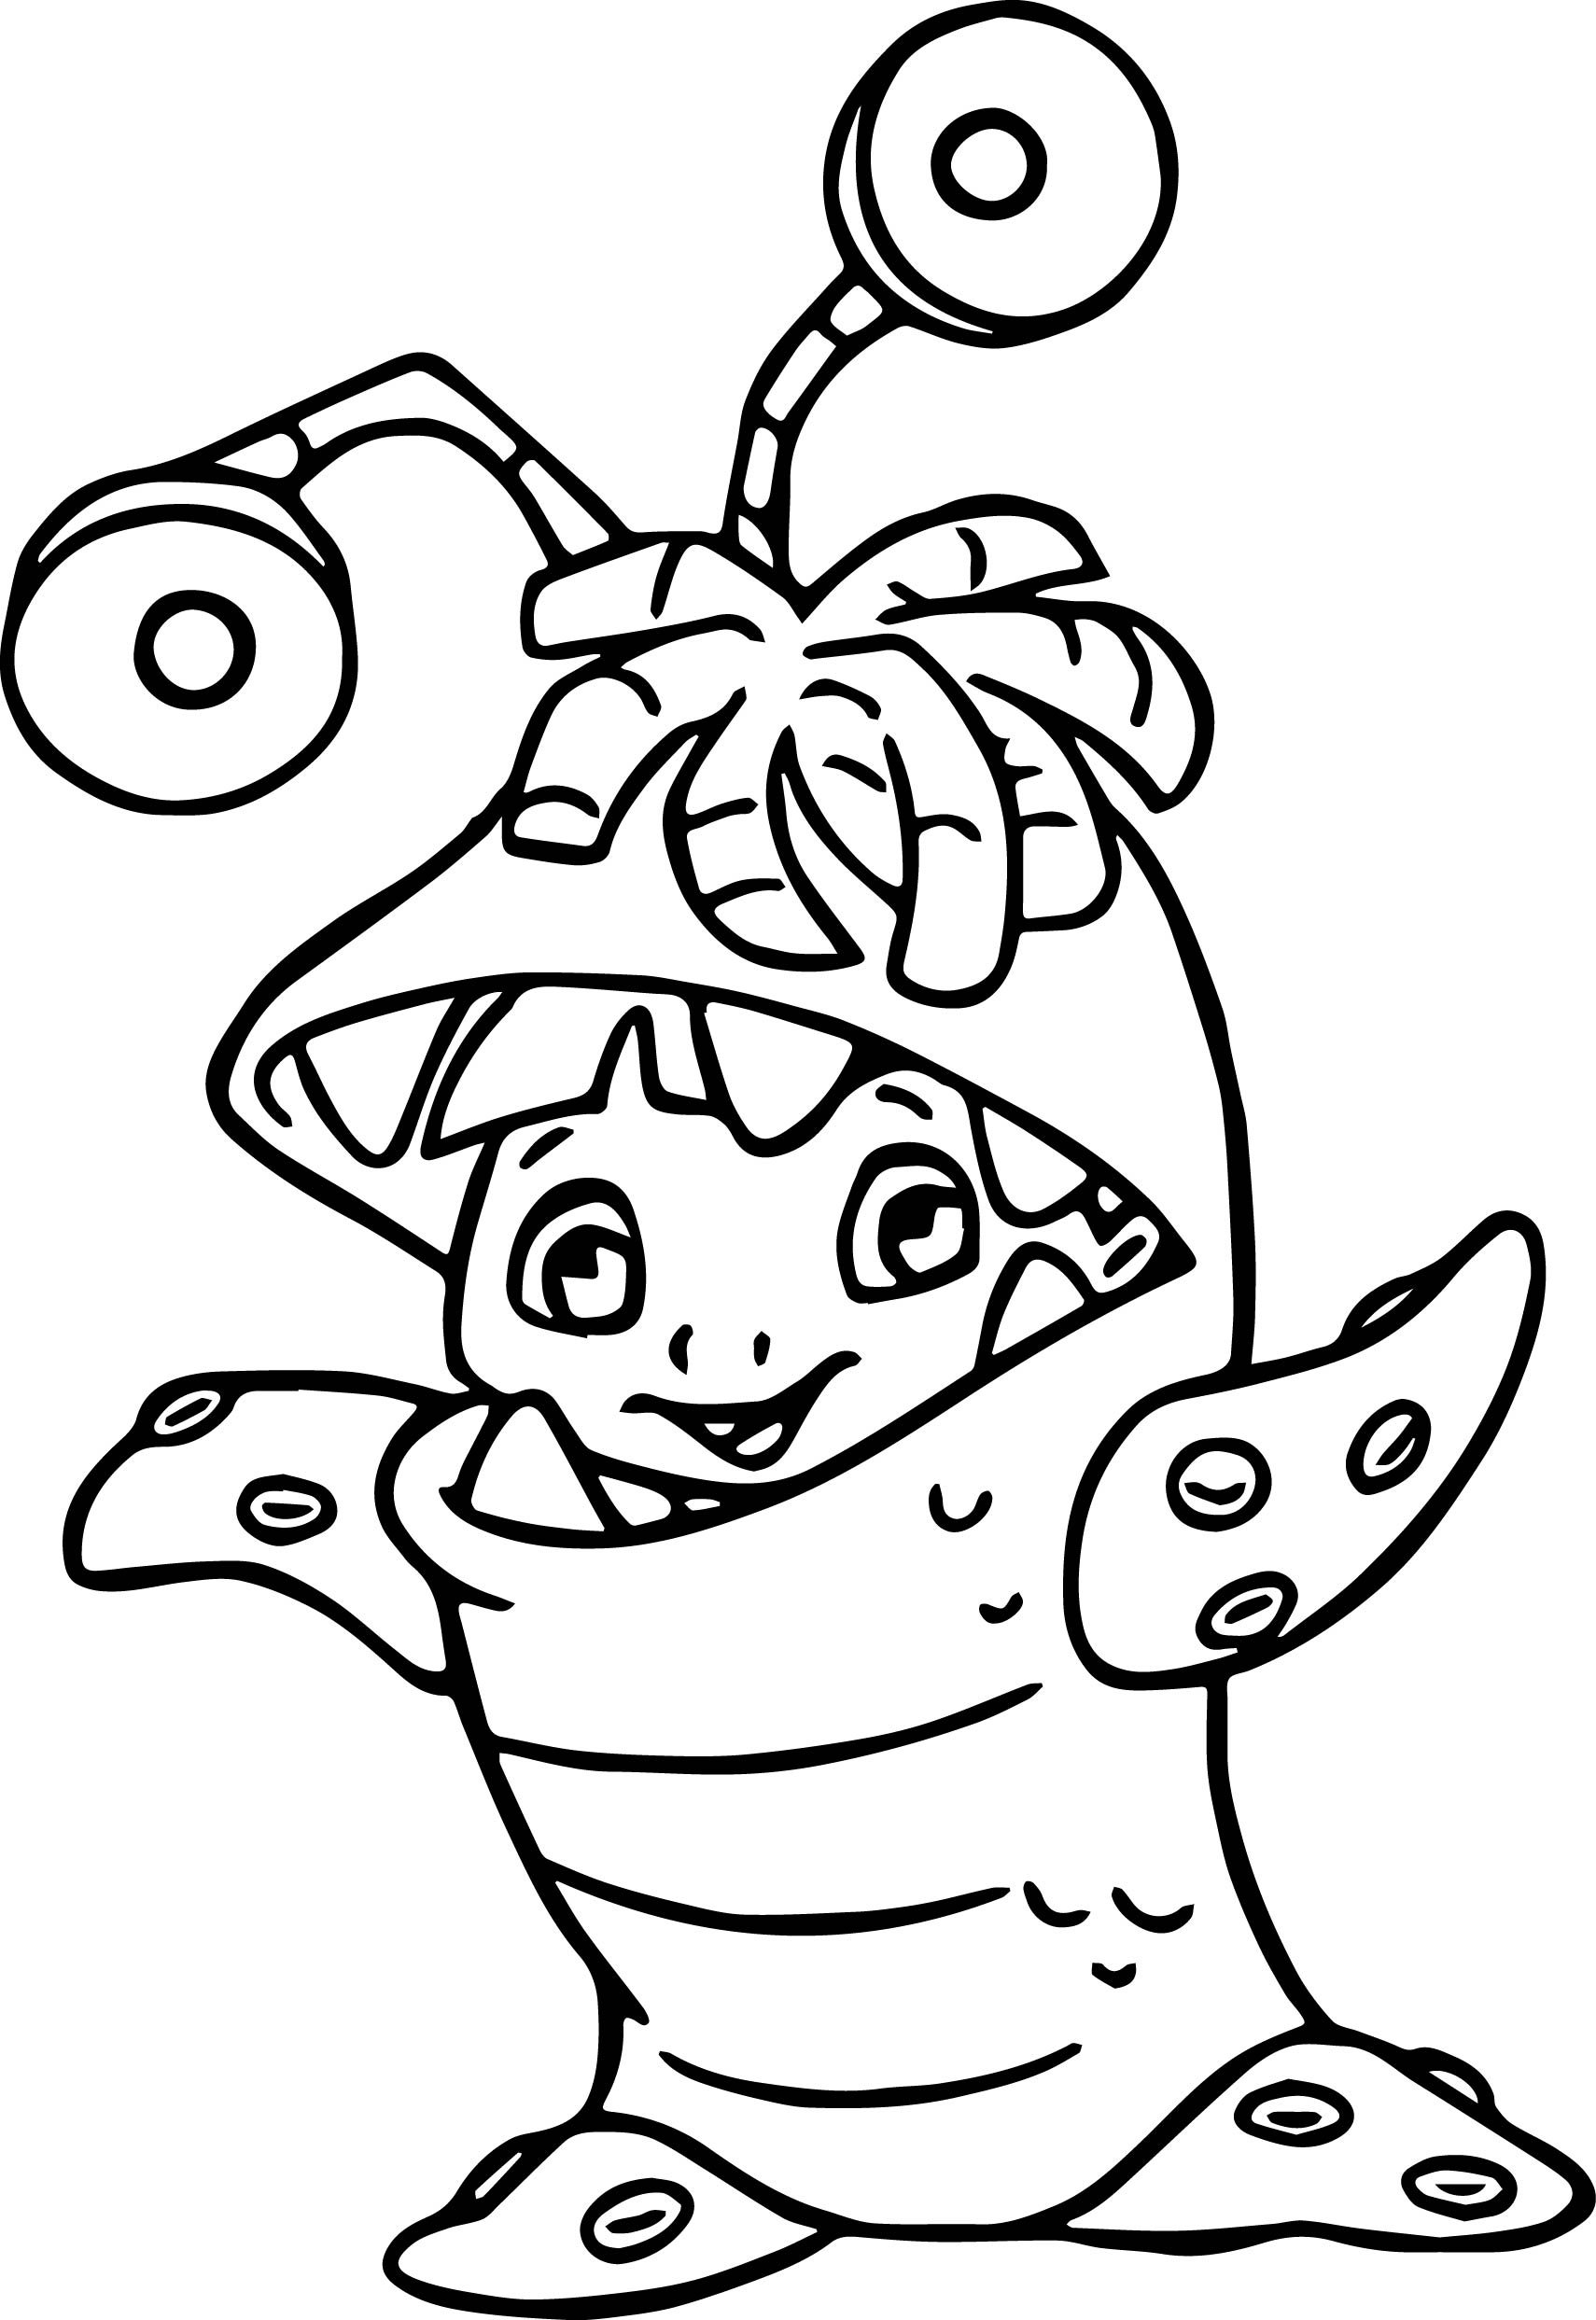 monsters inc boo coloring pages monsters inc coloring pages best coloring pages for kids pages boo monsters coloring inc